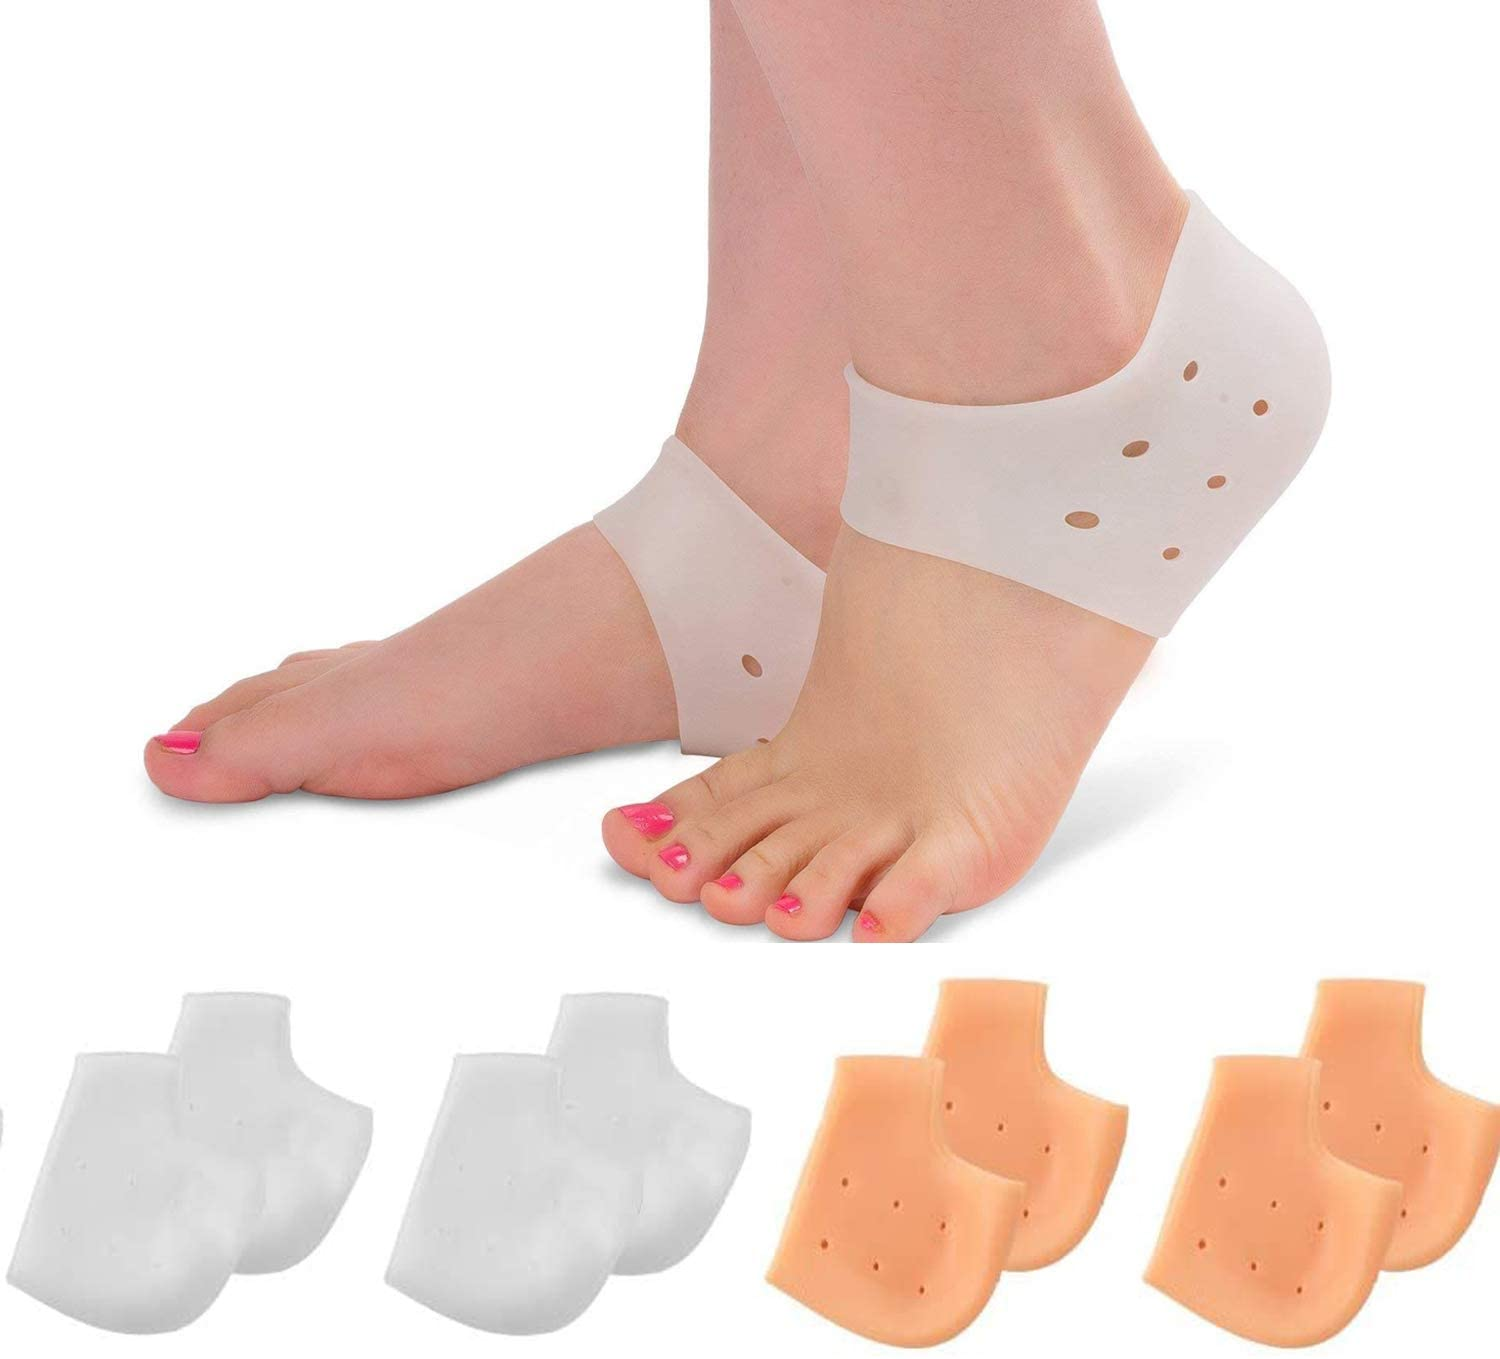 4 Pairs Silicone Heel Cups, Plantar Fasciitis Inserts, Breathable Heel Socks Protectors for Dry Cracked Heel and Reduce Pains of Plantar Fasciitis for Men and Women